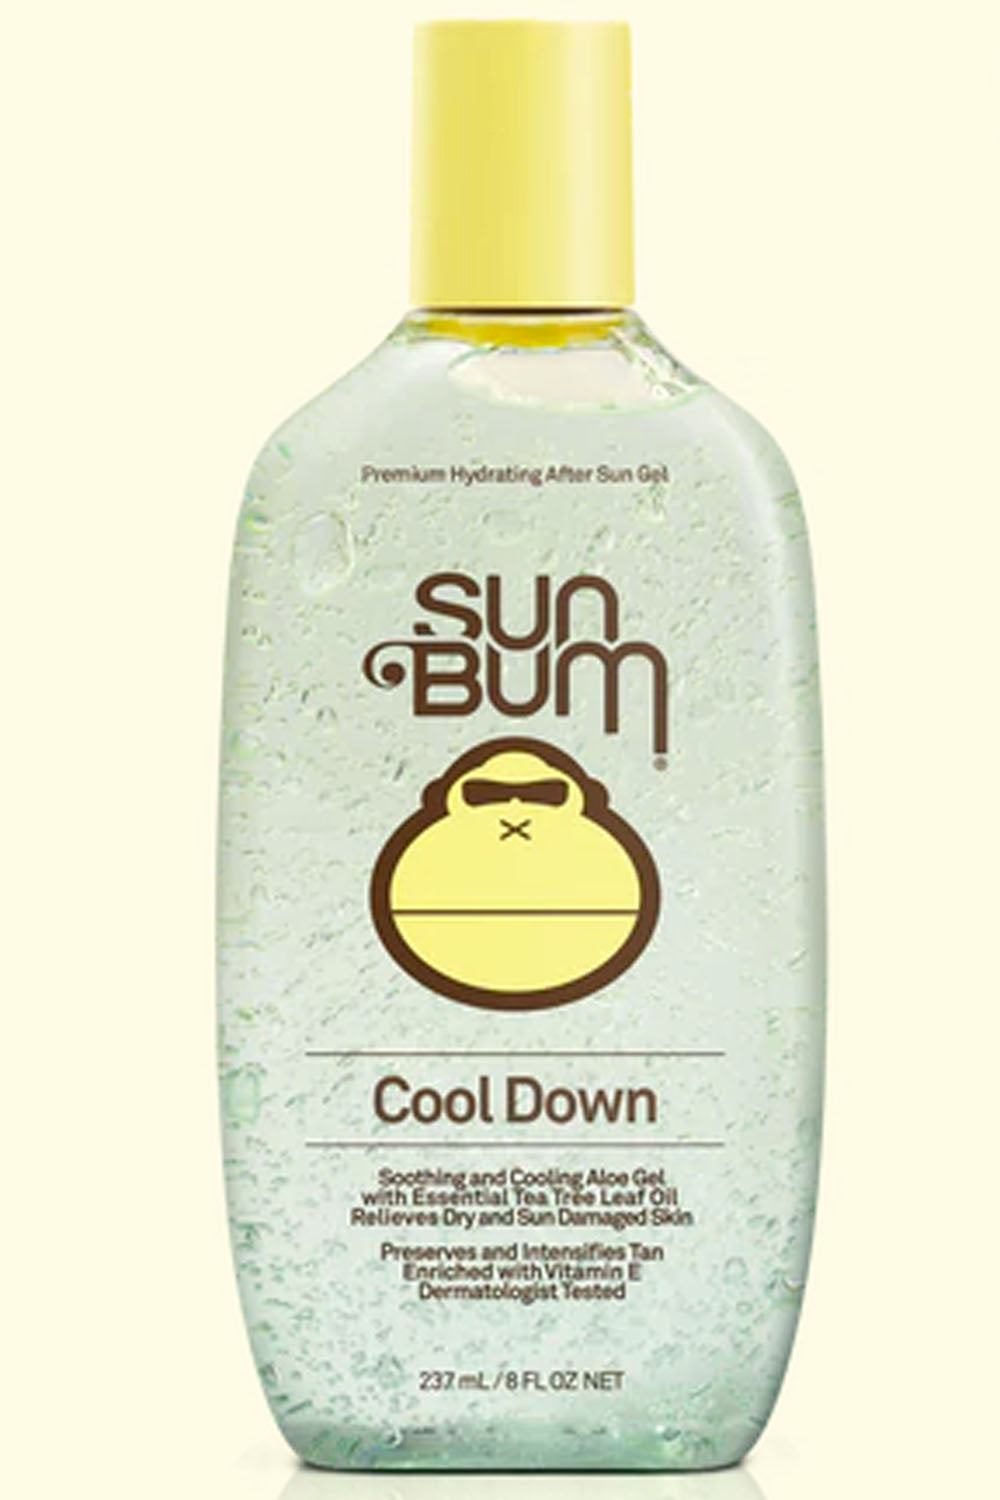 Sun Bum After Sun Aloe Gel